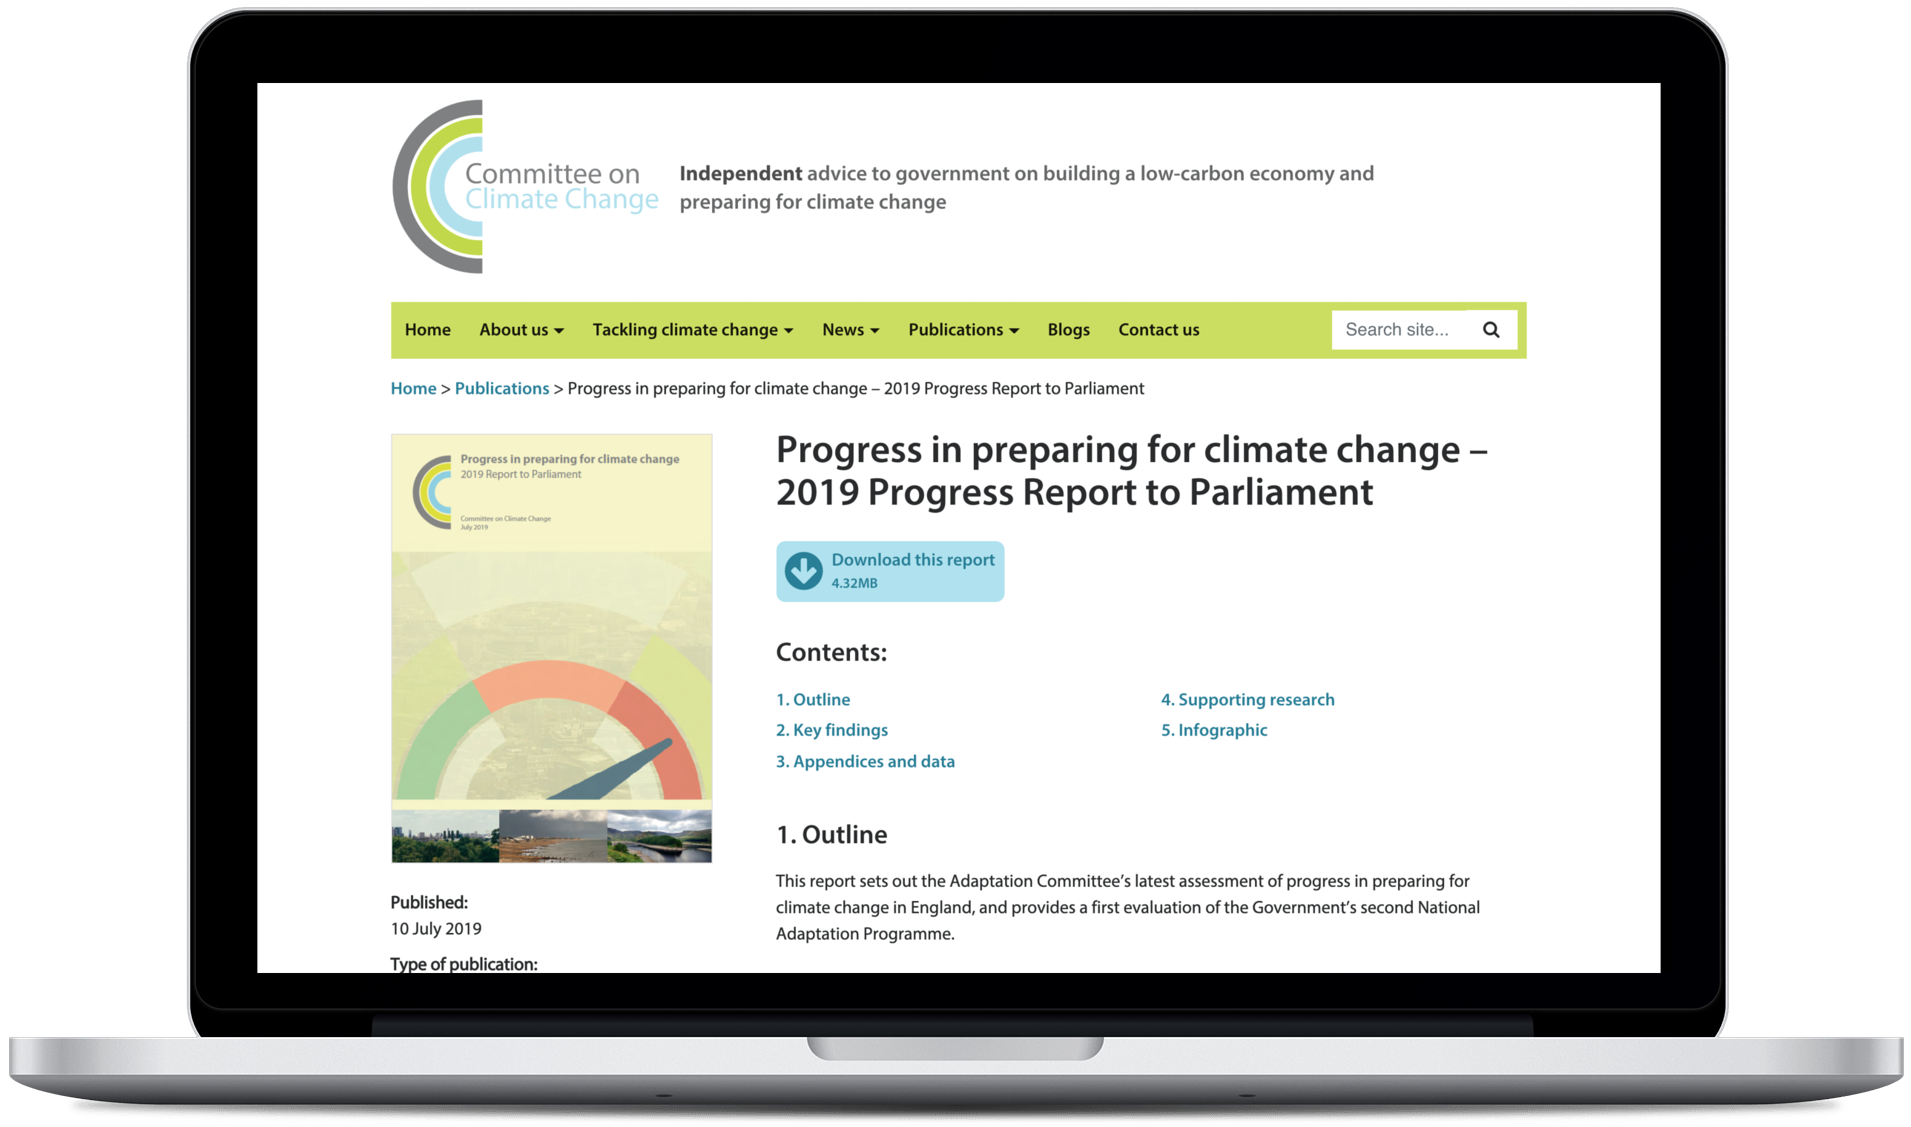 Understanding data user needs for the Committee on Climate Change